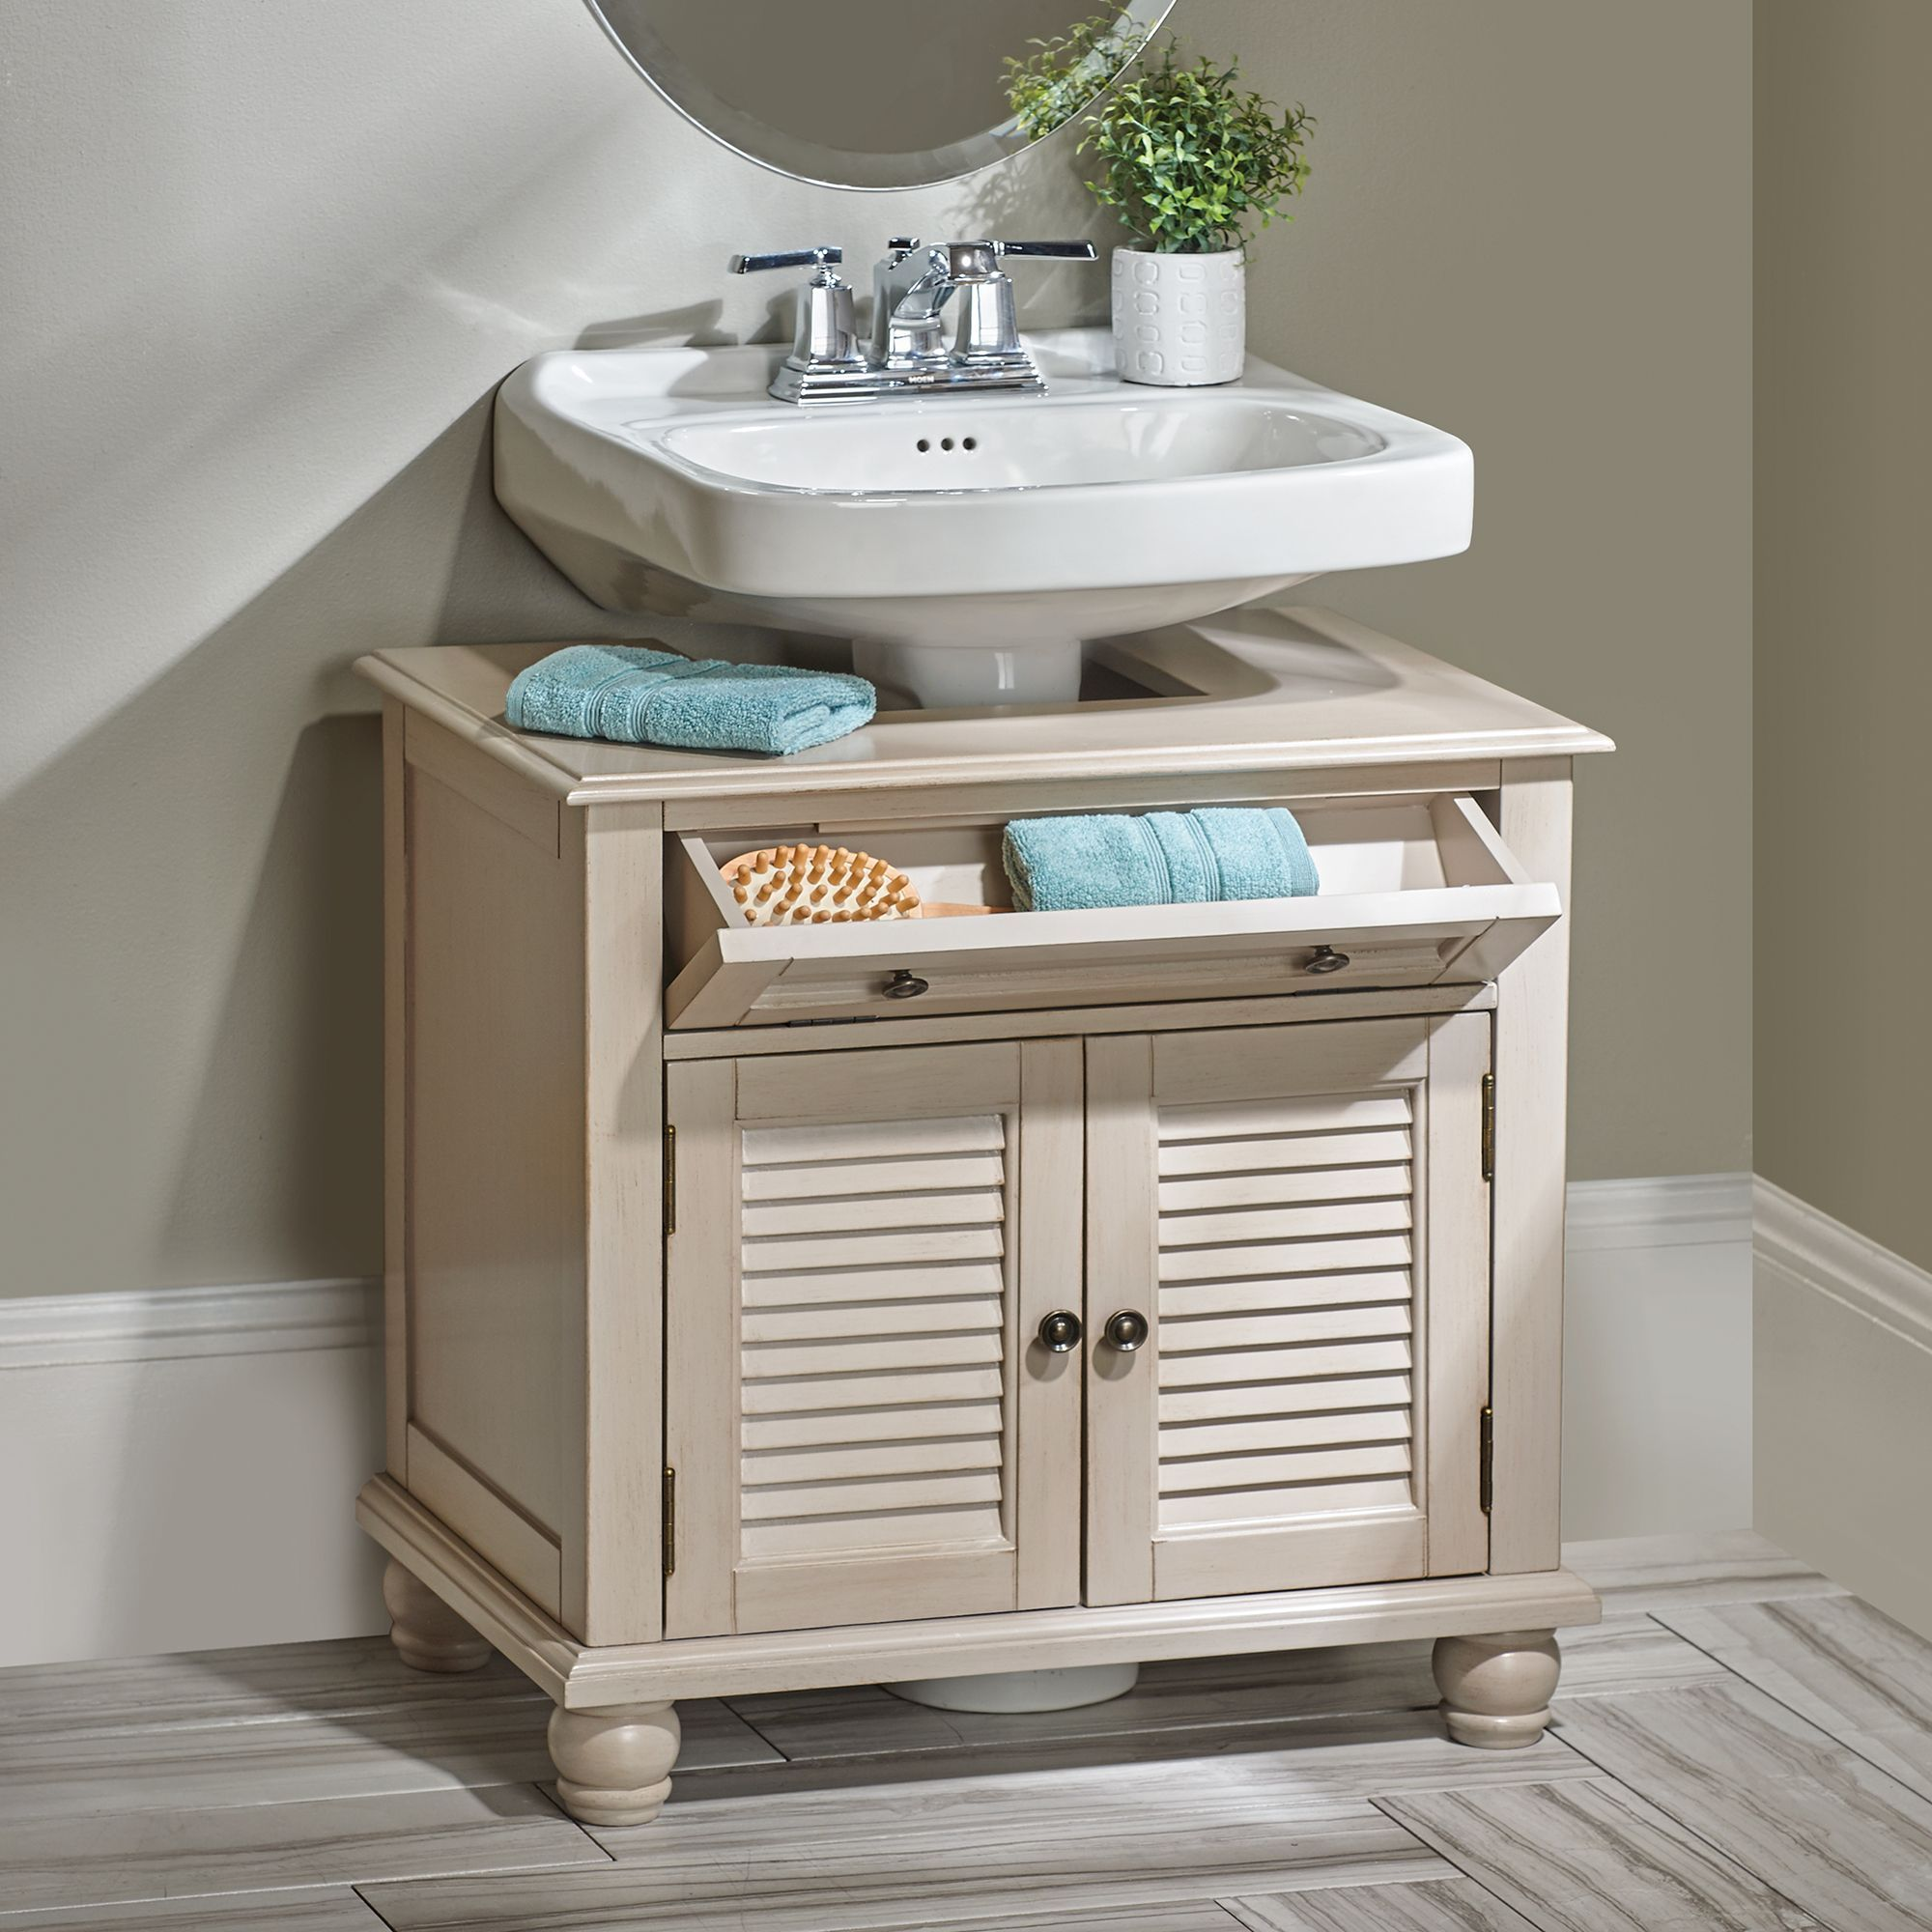 Newport Louvered Pedestal Sink Cabinet Pedestal Sink Storage Small Bathroom Storage Bathroom Sink Cabinets